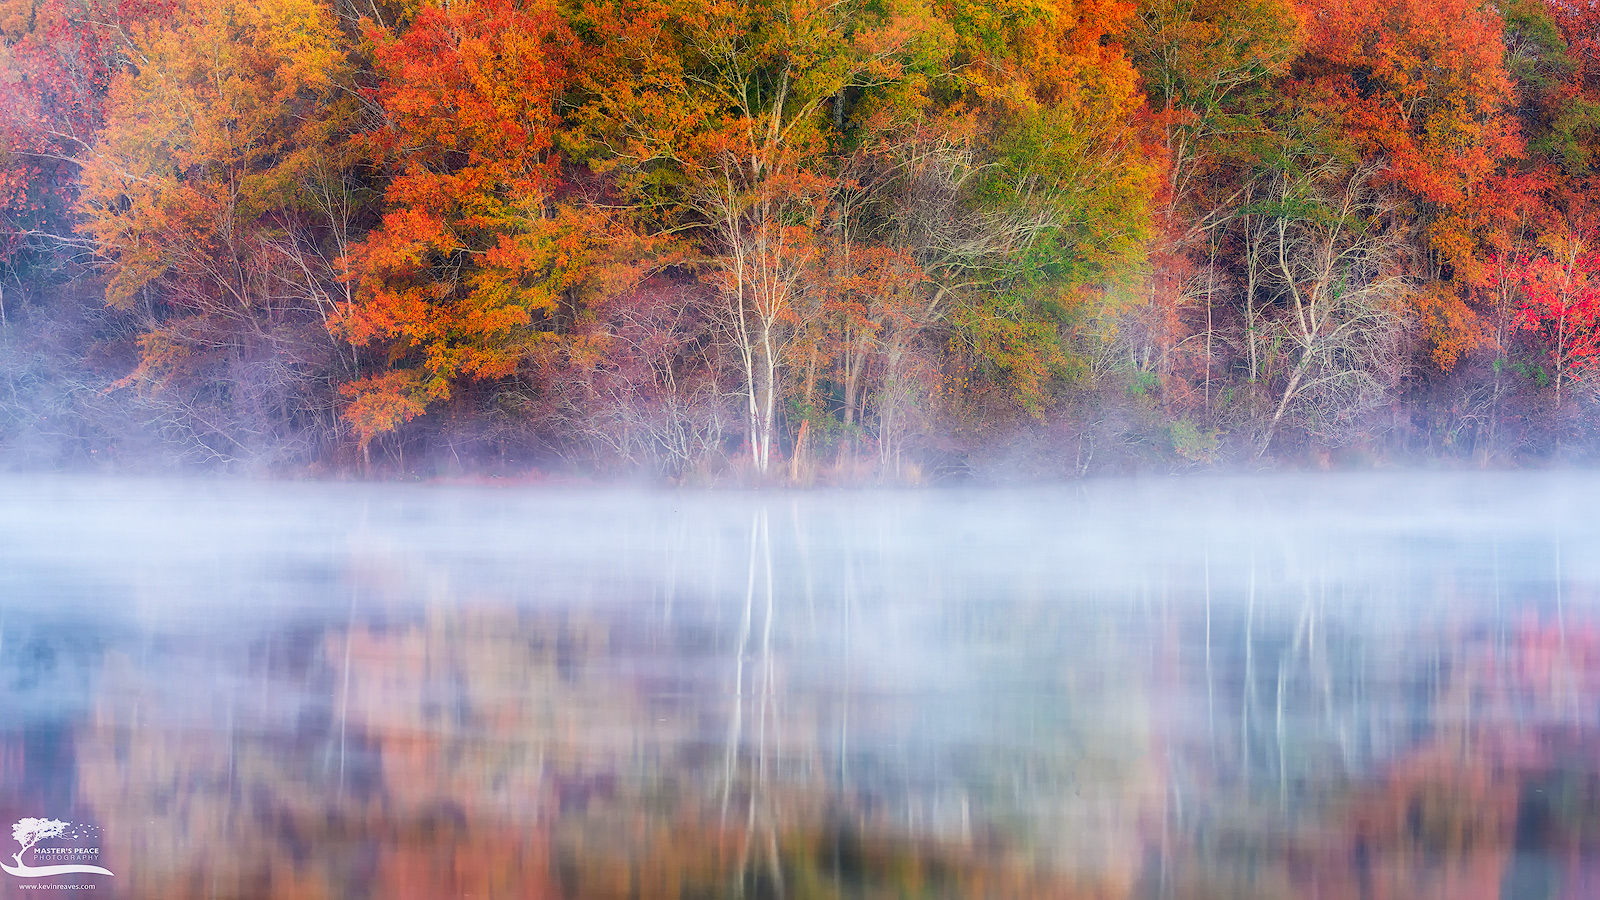 fog, smoke, mirrors, georgia, duck, ponds, morning, light, colors, fall, photo